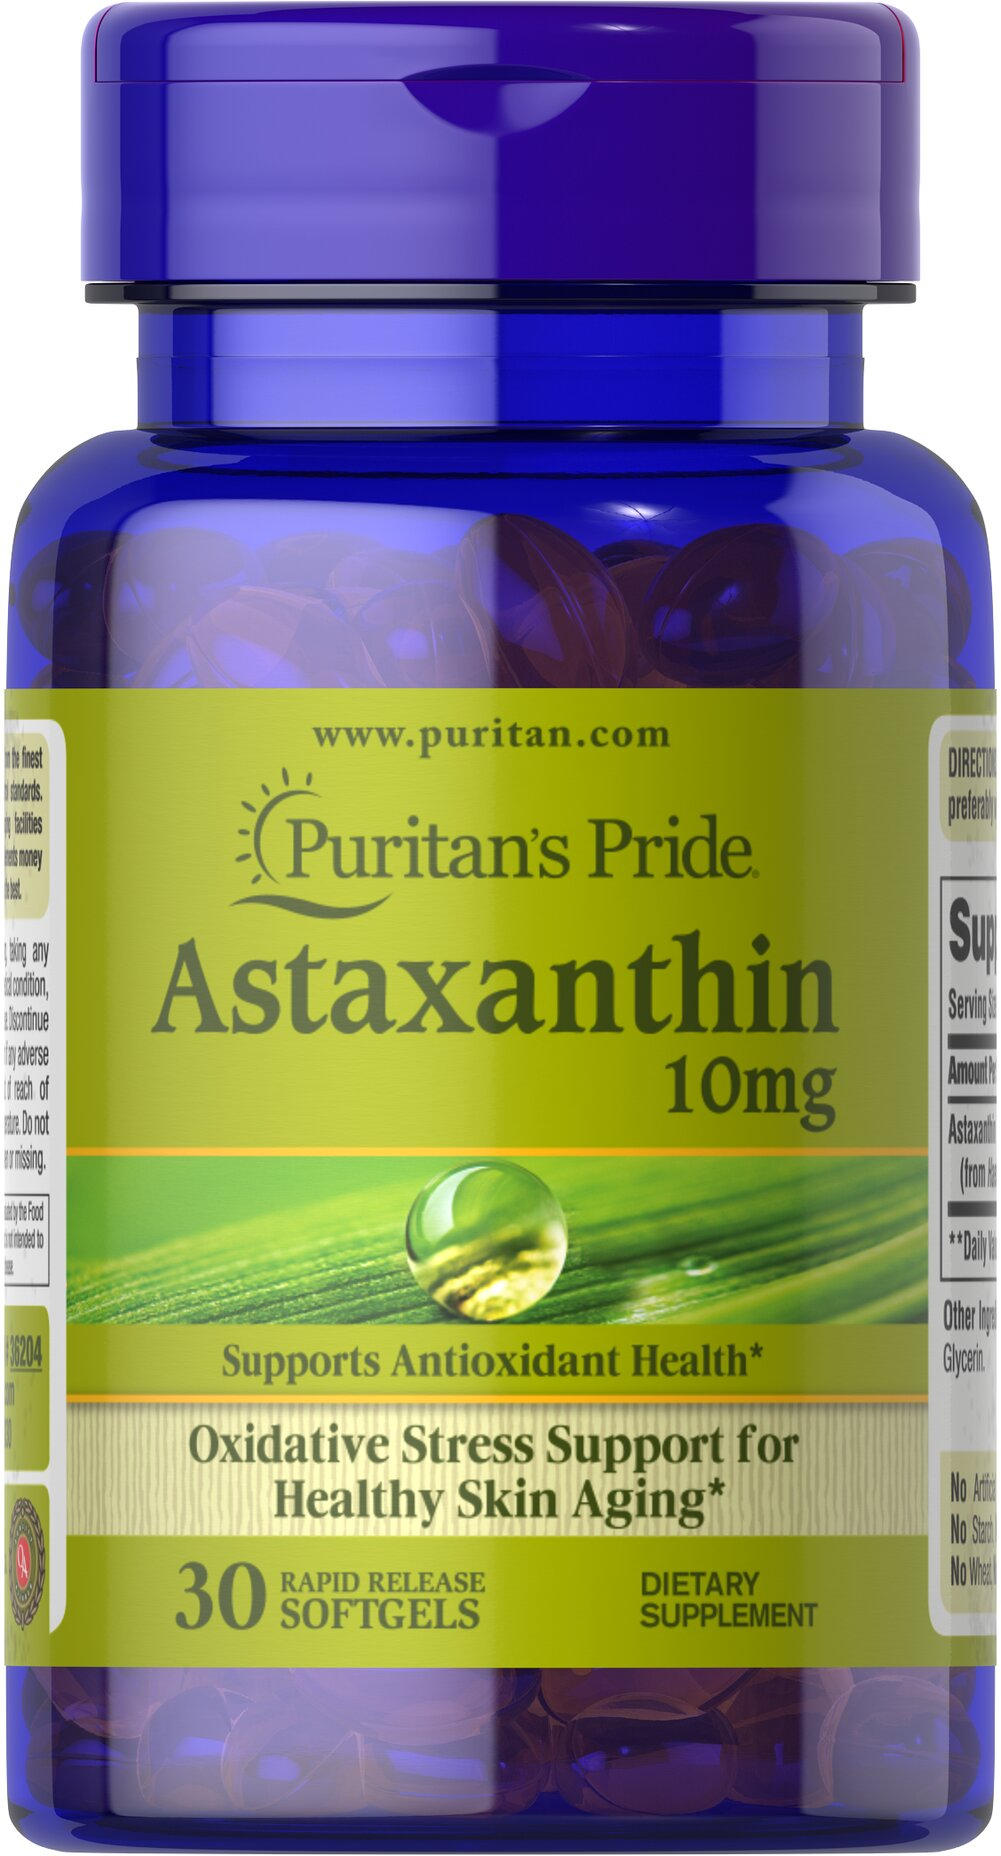 Natural Astaxanthin 10 mg <p>Powerful Antioxidant**</p><p>Suited for Stressful Lifestyles**</p><p>Astaxanthin promotes antioxidant health, which helps fight the cell damaging free radicals that can lead to oxidative stress which may contribute to the premature aging of cells.**</p> 30 Softgels 10 mg $39.99